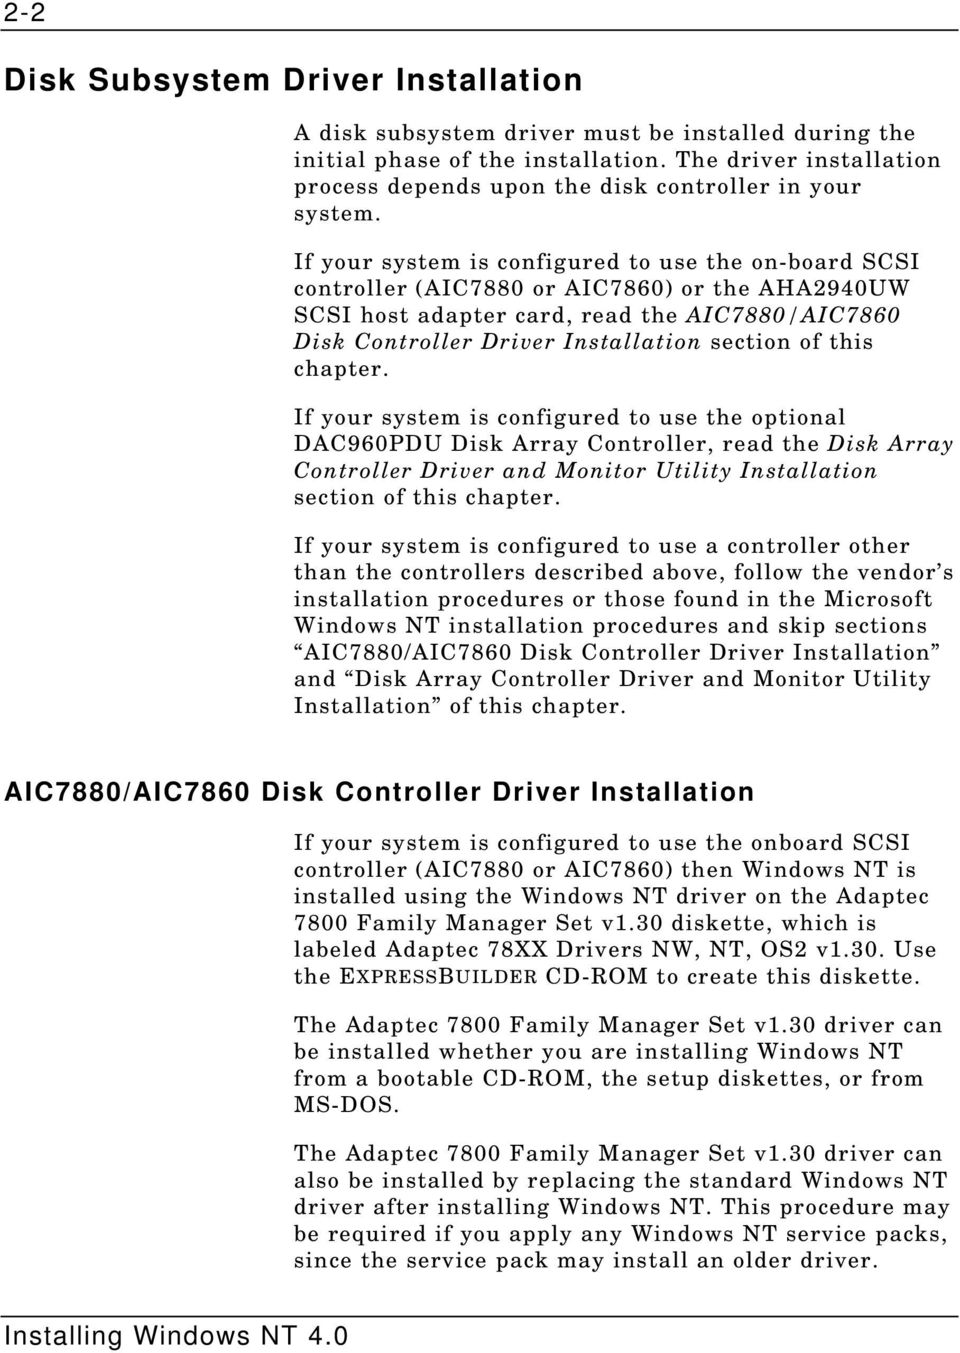 If your system is configured to use the on-board SCSI controller (AIC7880 or AIC7860) or the AHA2940UW SCSI host adapter card, read the AIC7880/AIC7860 Disk Controller Driver Installation section of